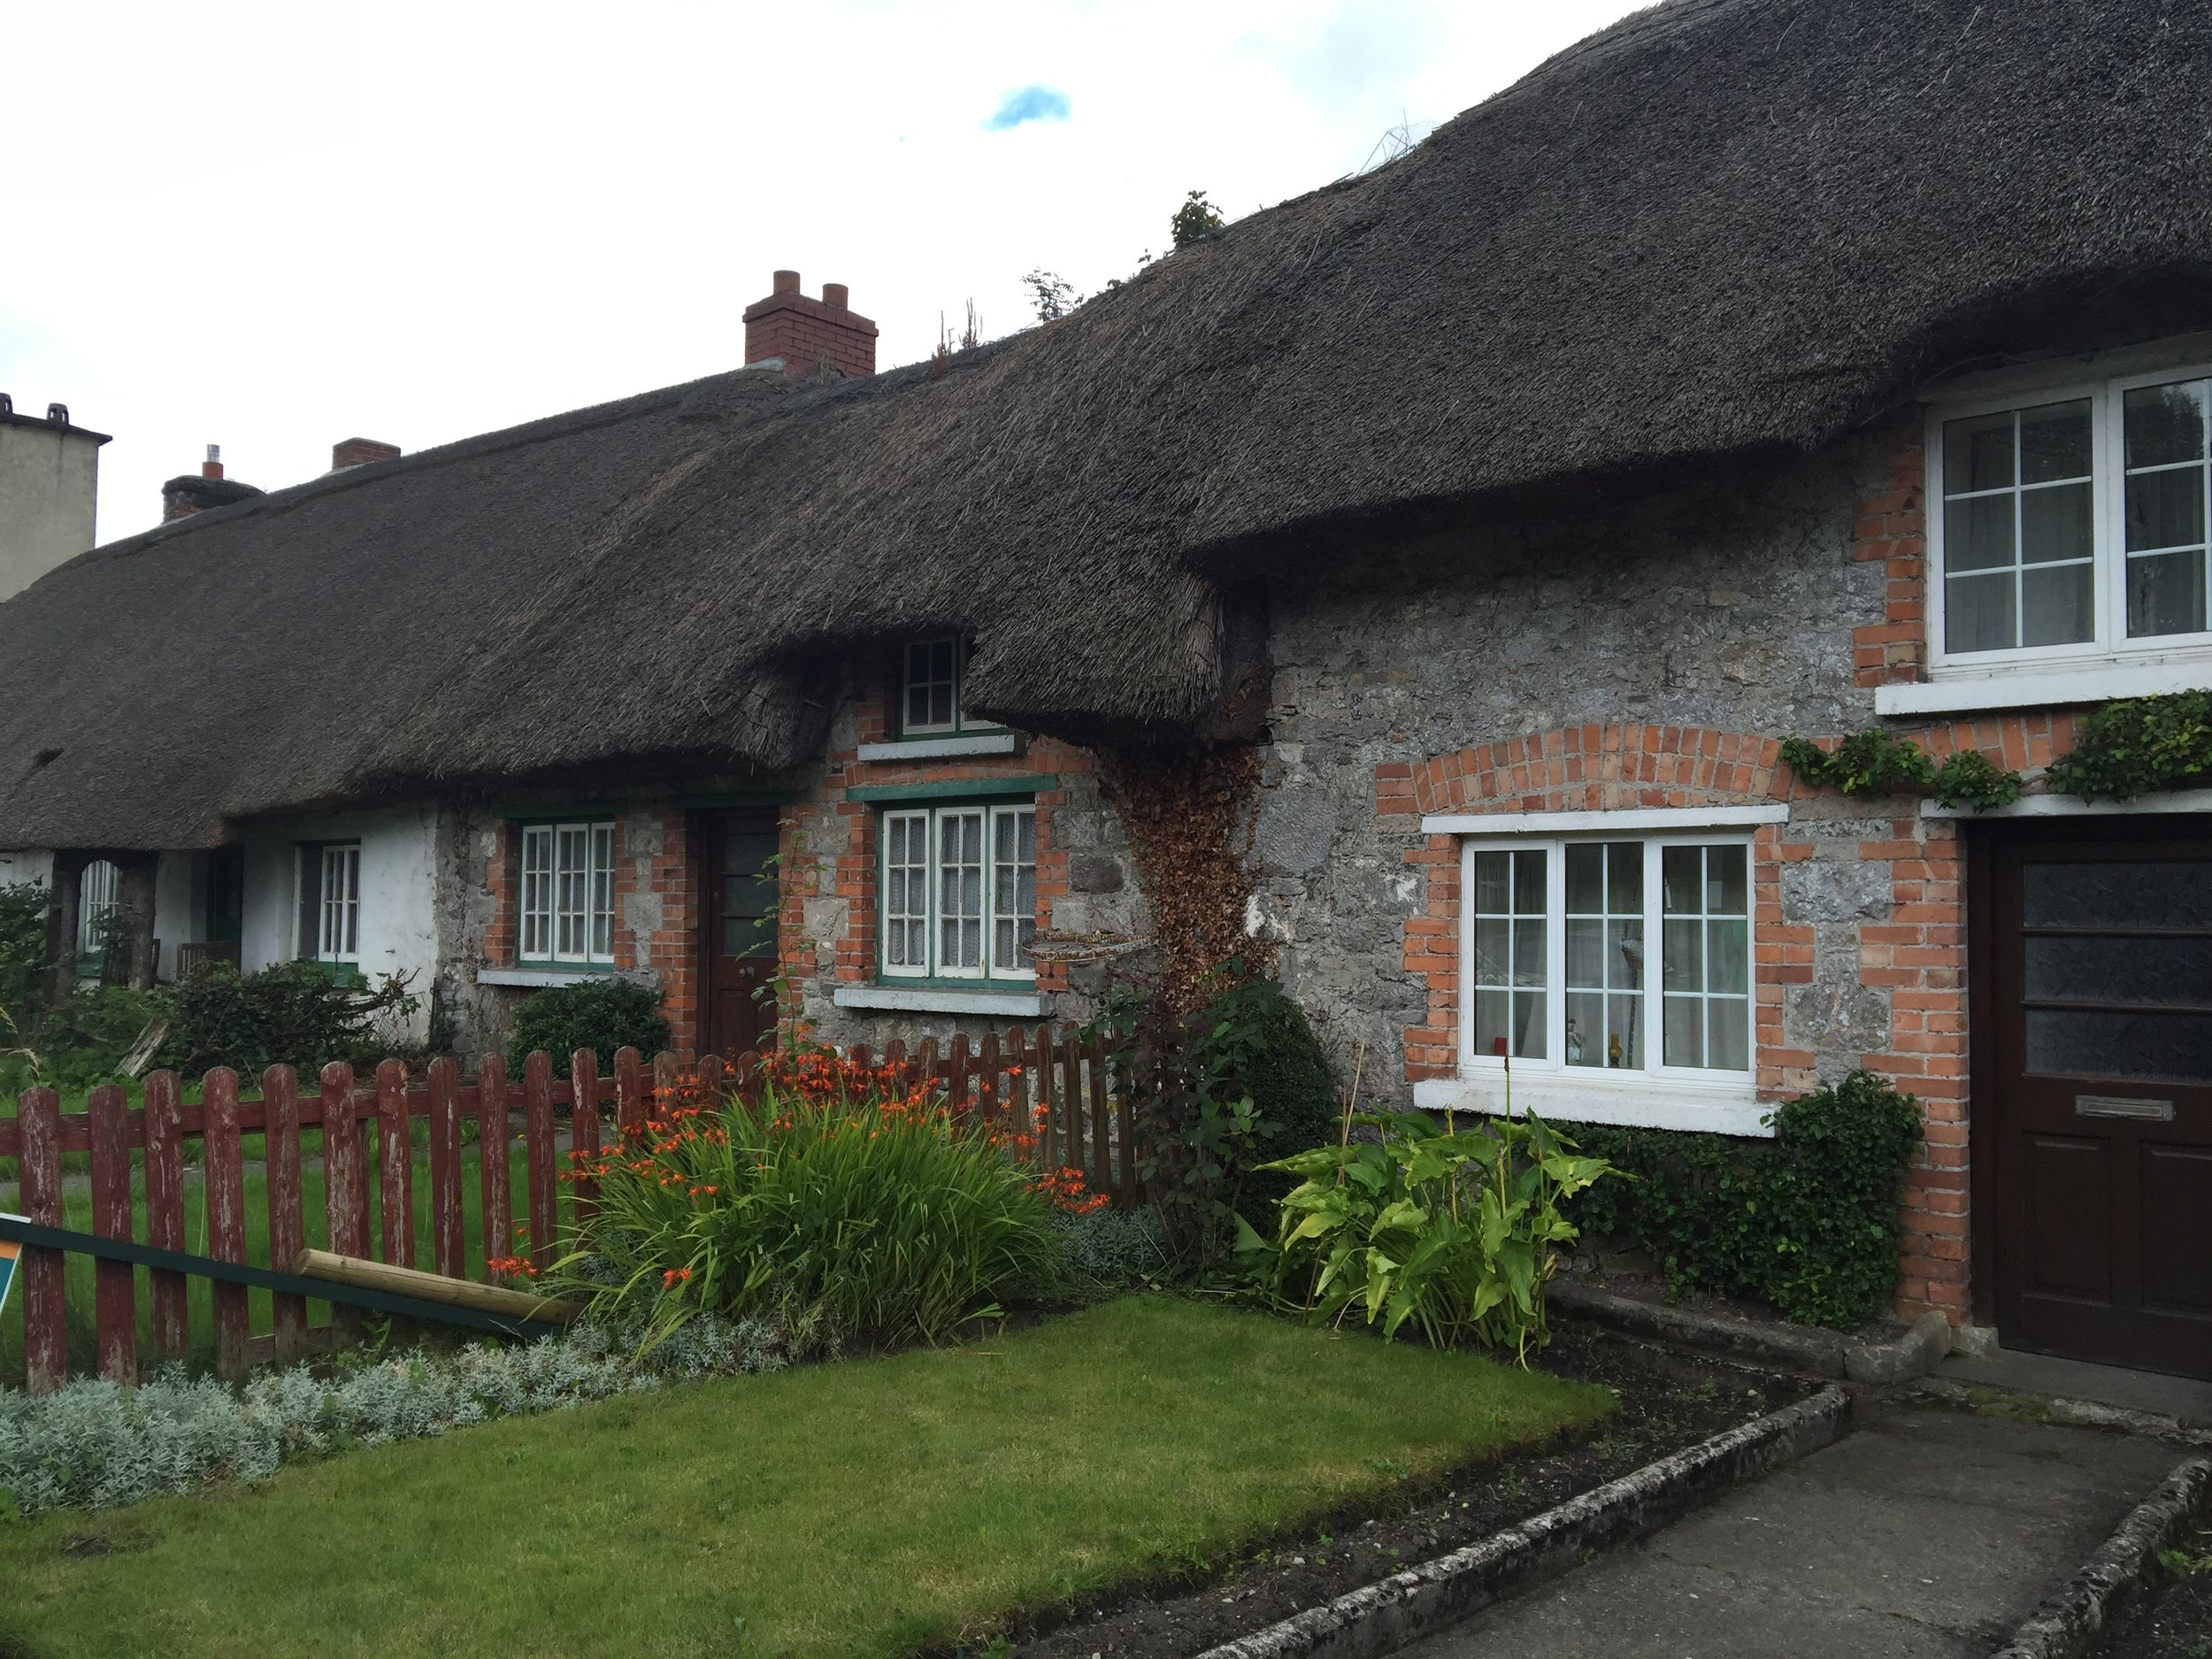 Thatched Roof Houses in Adare